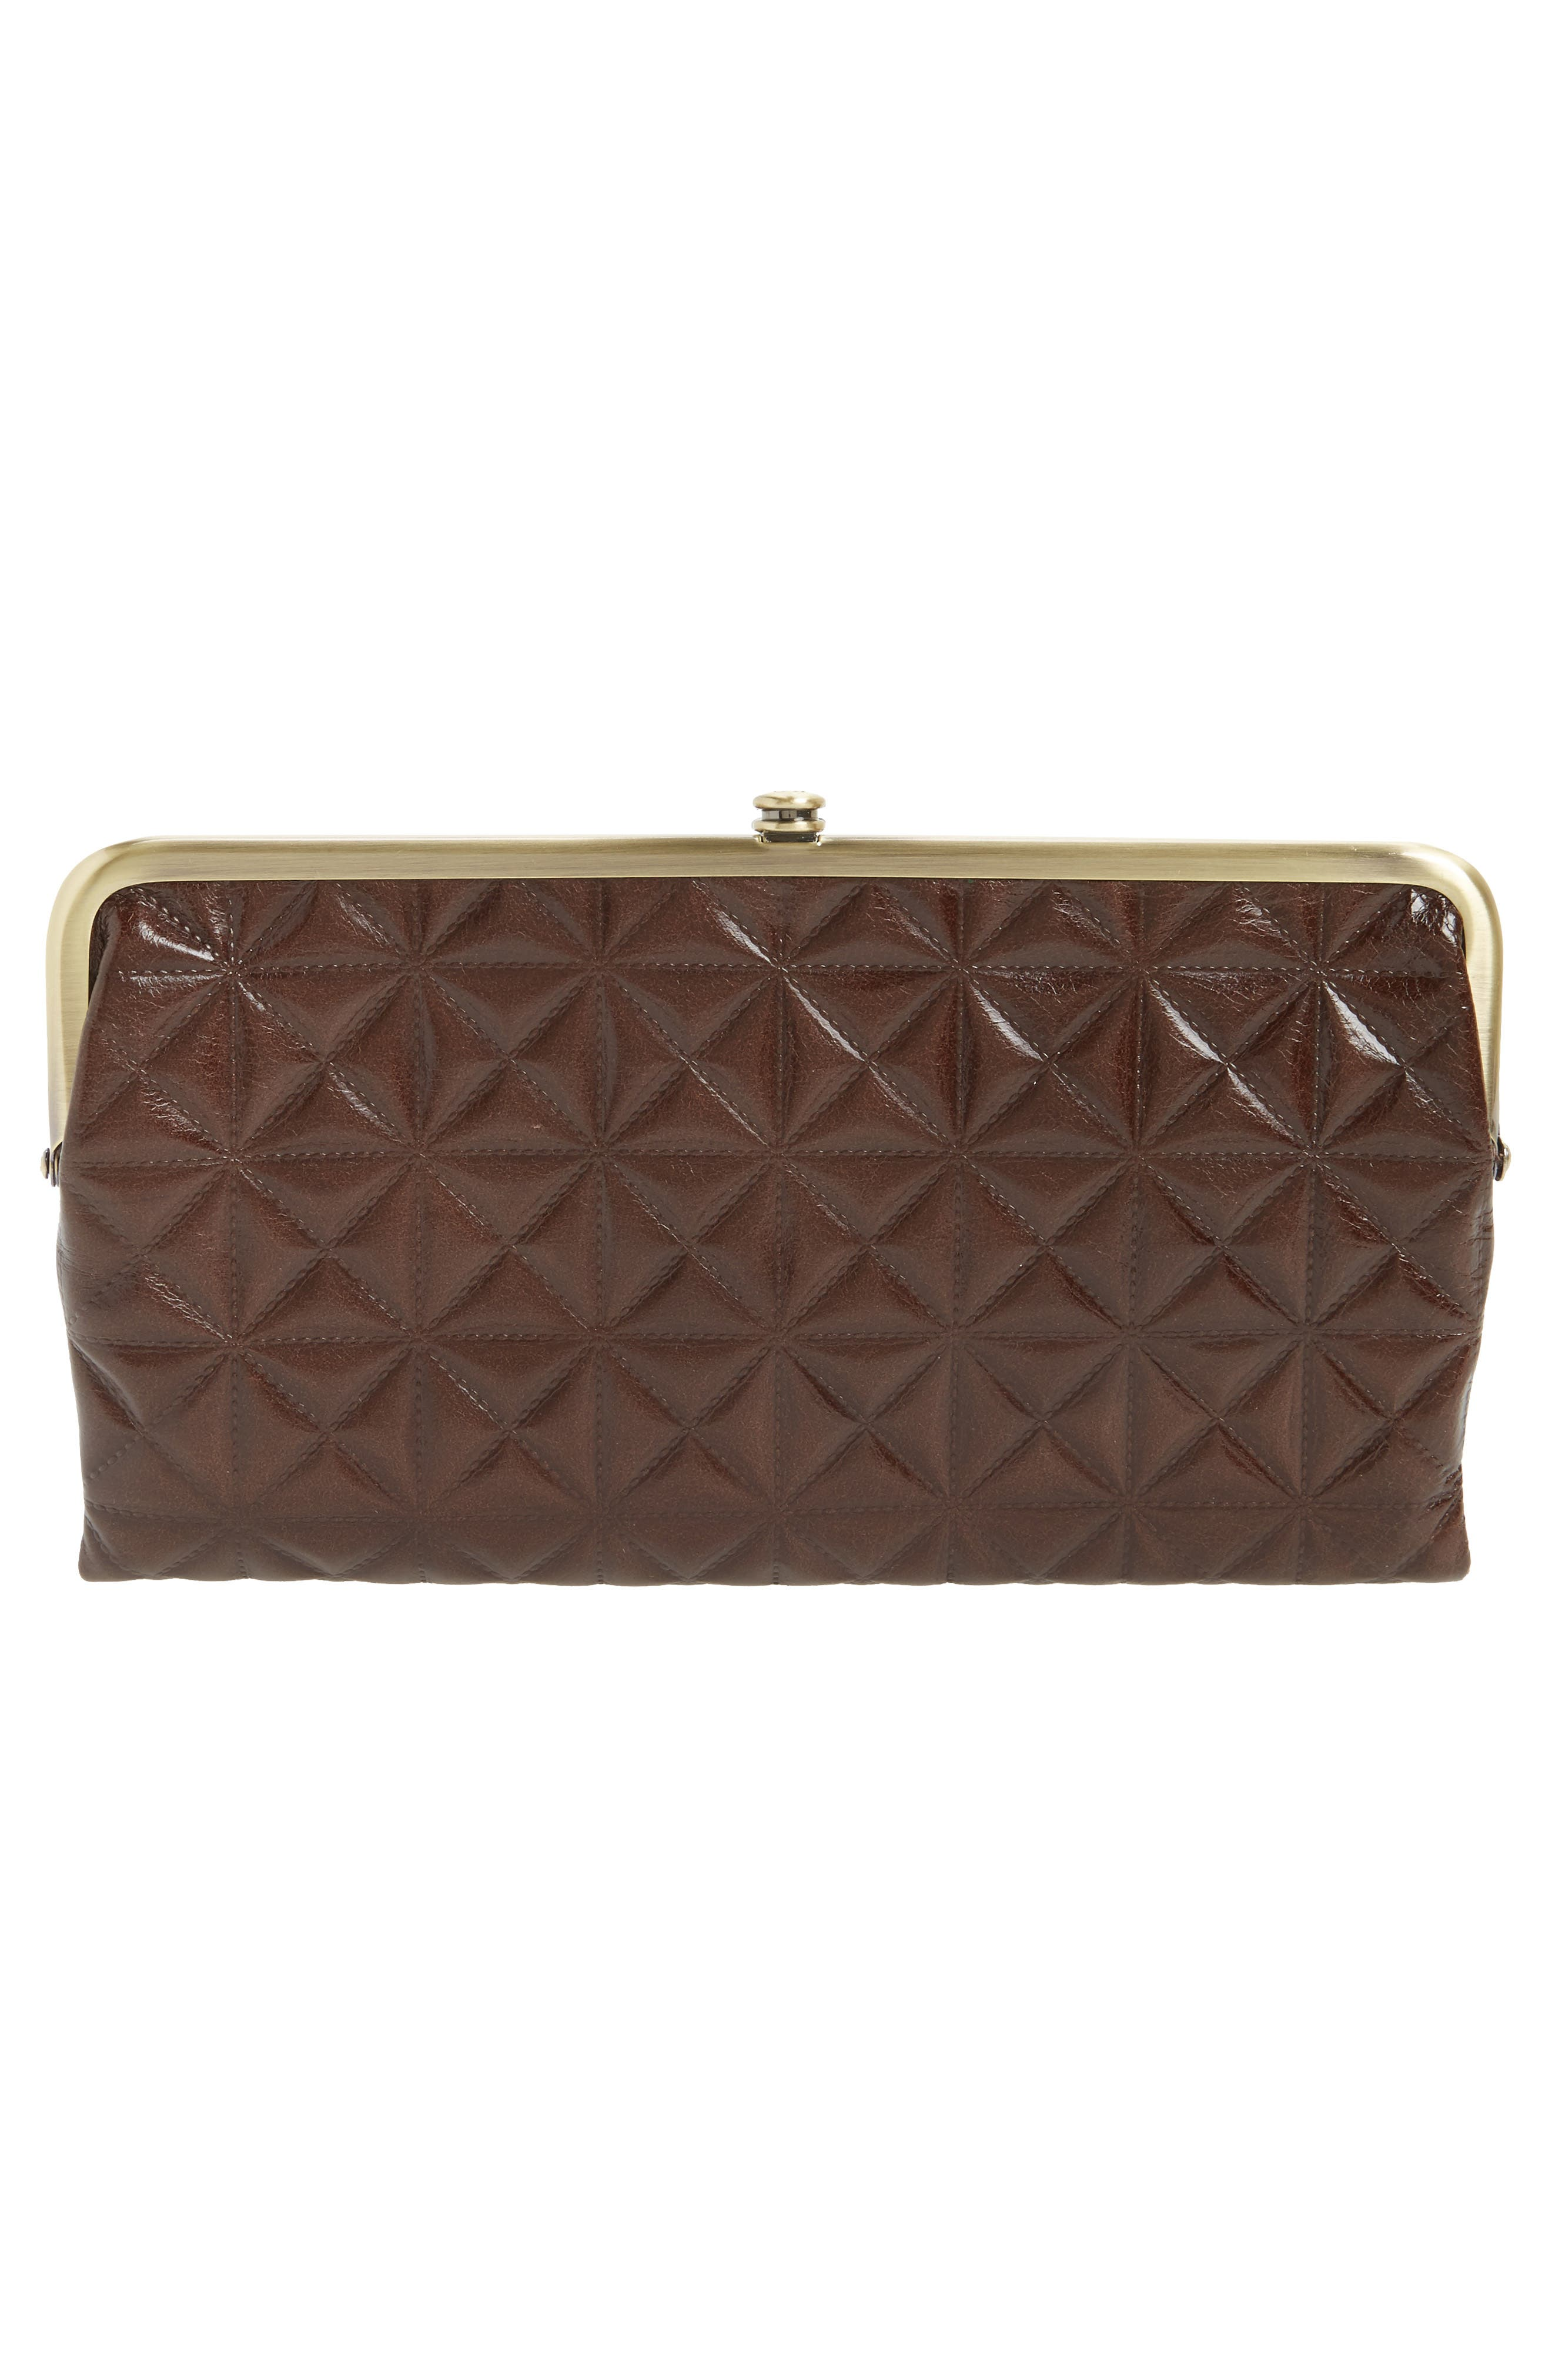 Lauren Quilted Calfskin Leather Wallet,                             Alternate thumbnail 3, color,                             Embossed Espresso